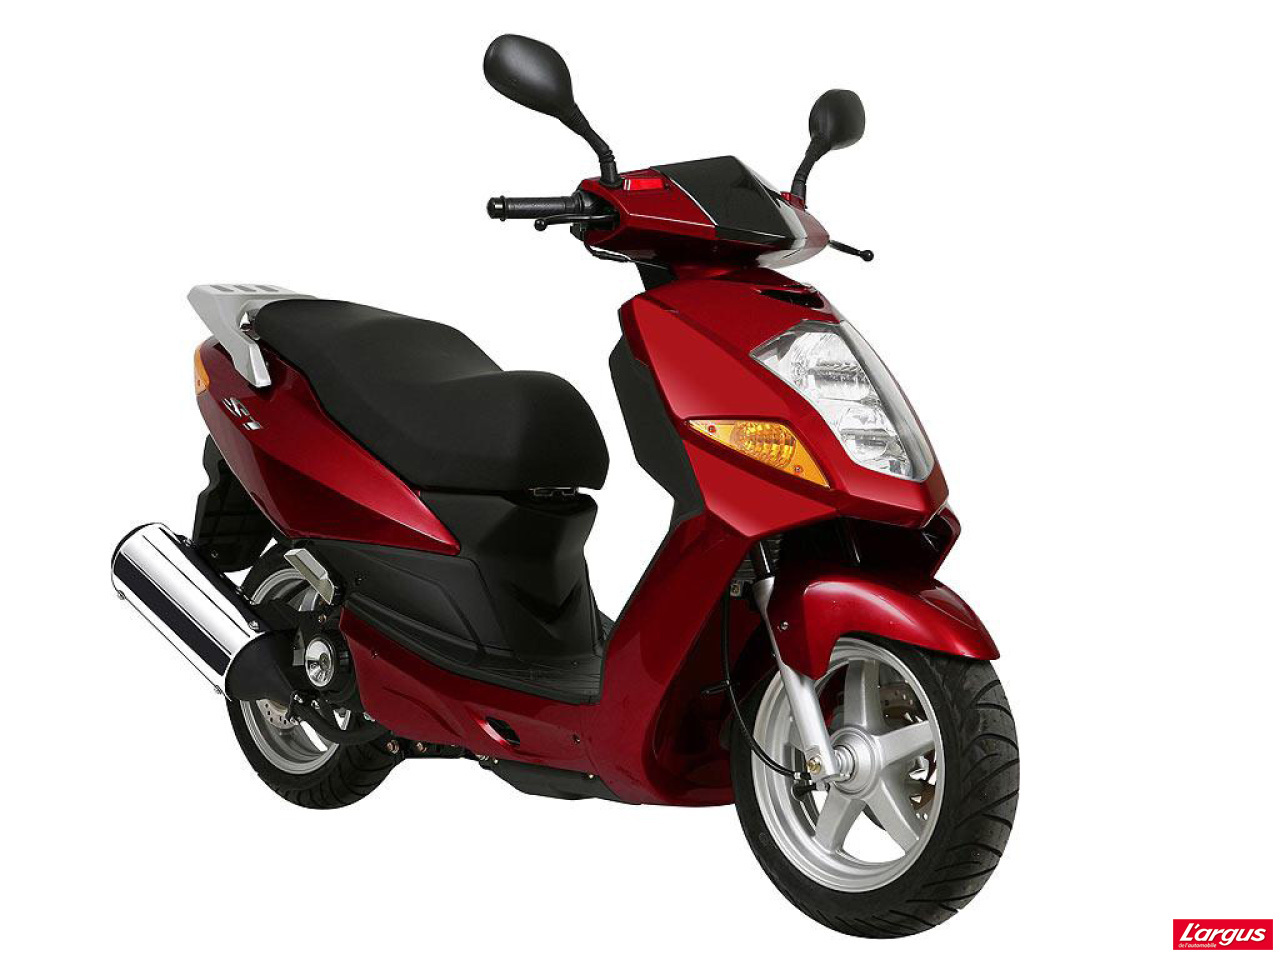 les concurrents du honda pcx 125 l 39 argus. Black Bedroom Furniture Sets. Home Design Ideas